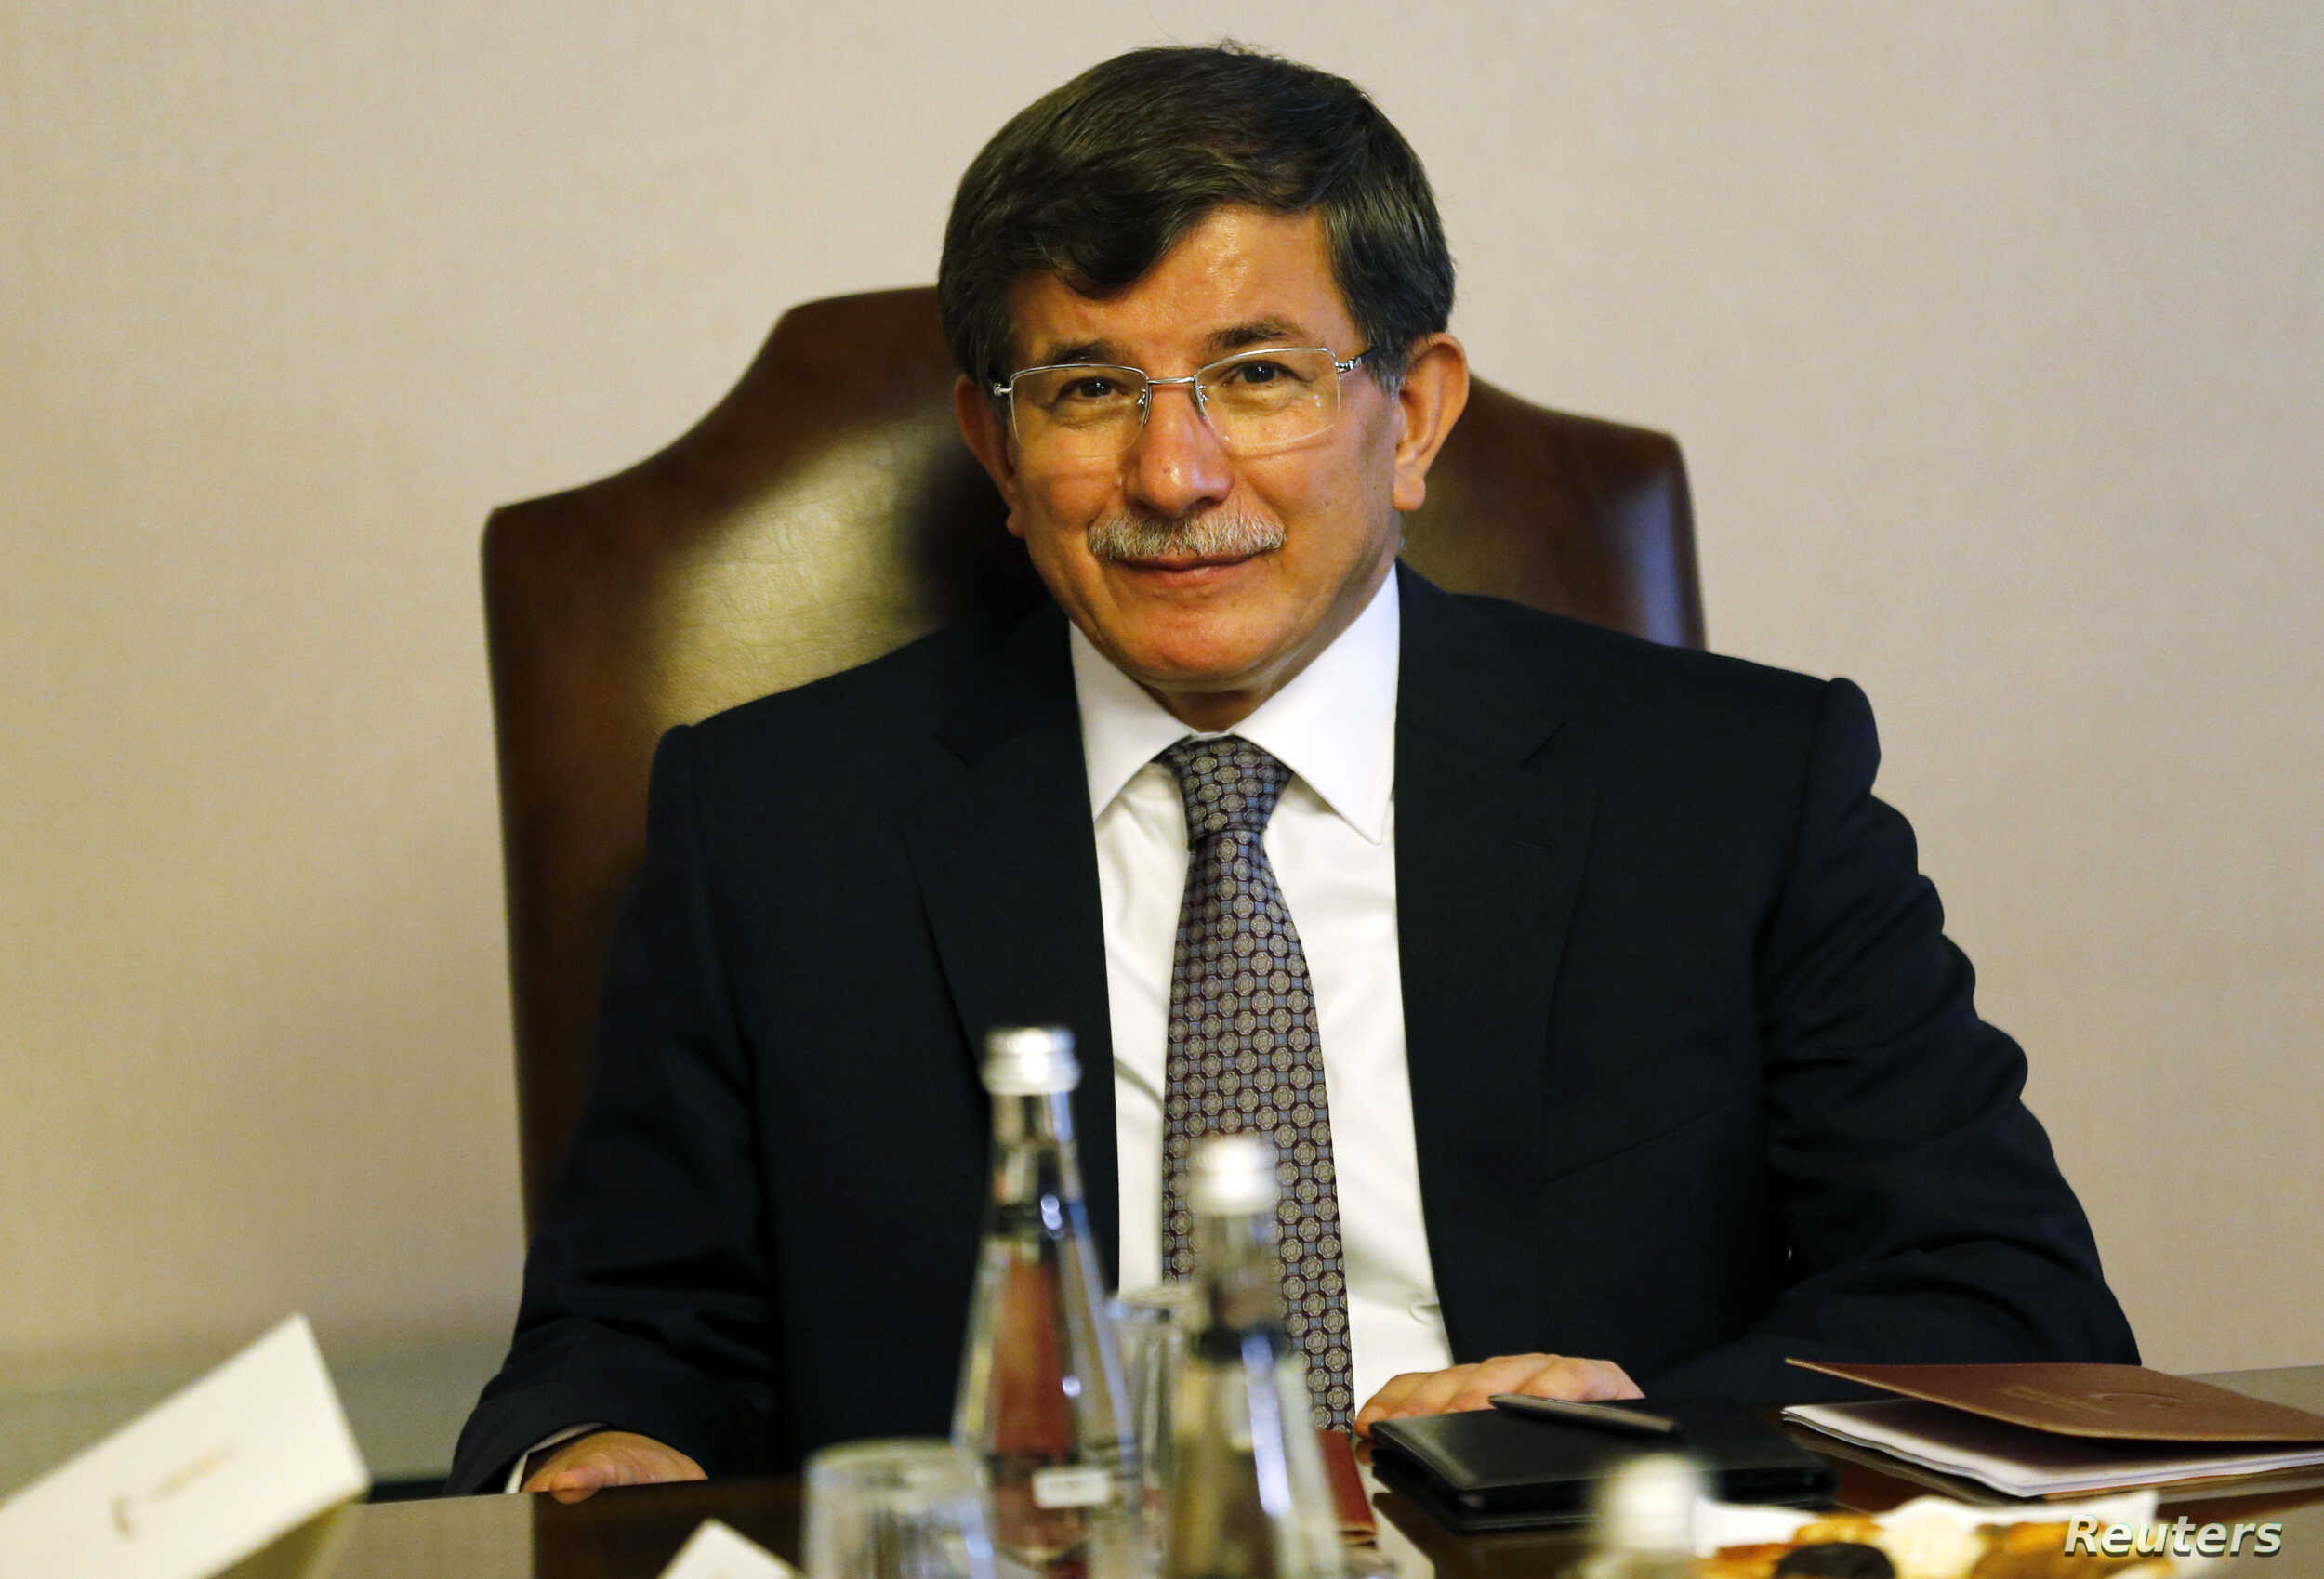 Turkey's Foreign Minister Ahmet Davutoglu attends a meeting in Ankara, Turkey, Aug. 20, 2014.